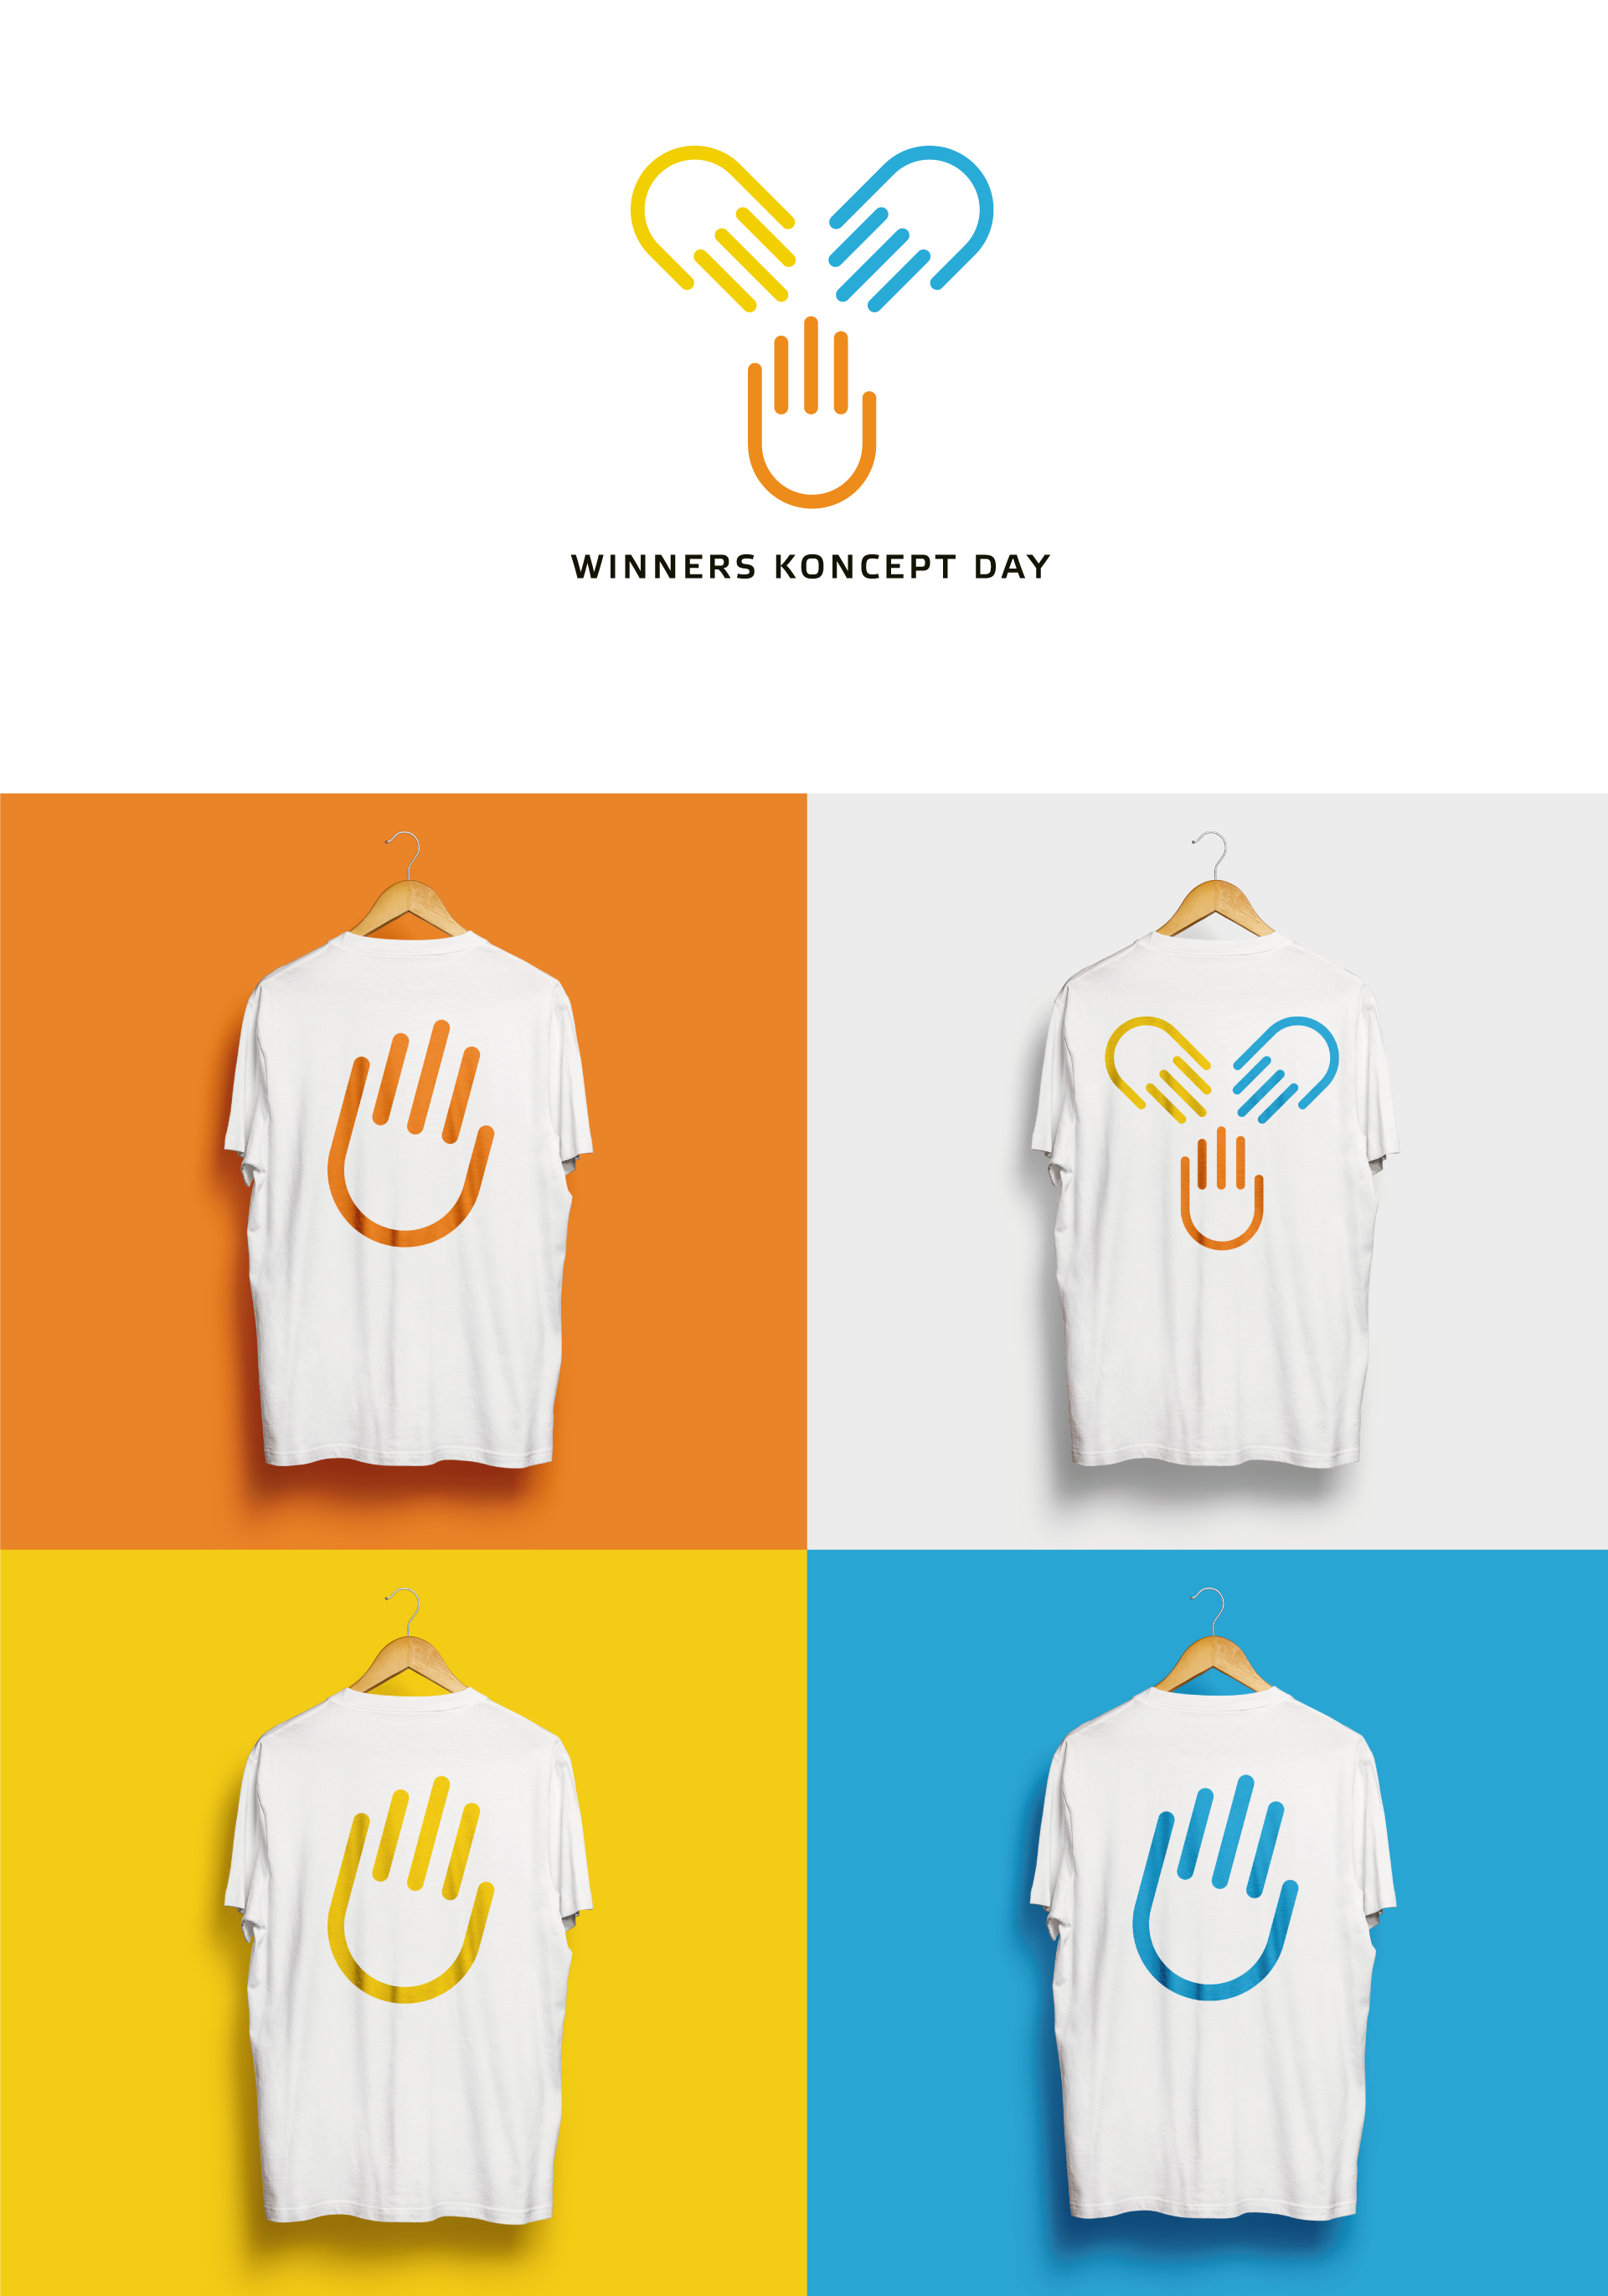 Logo Design Winners Concept Day